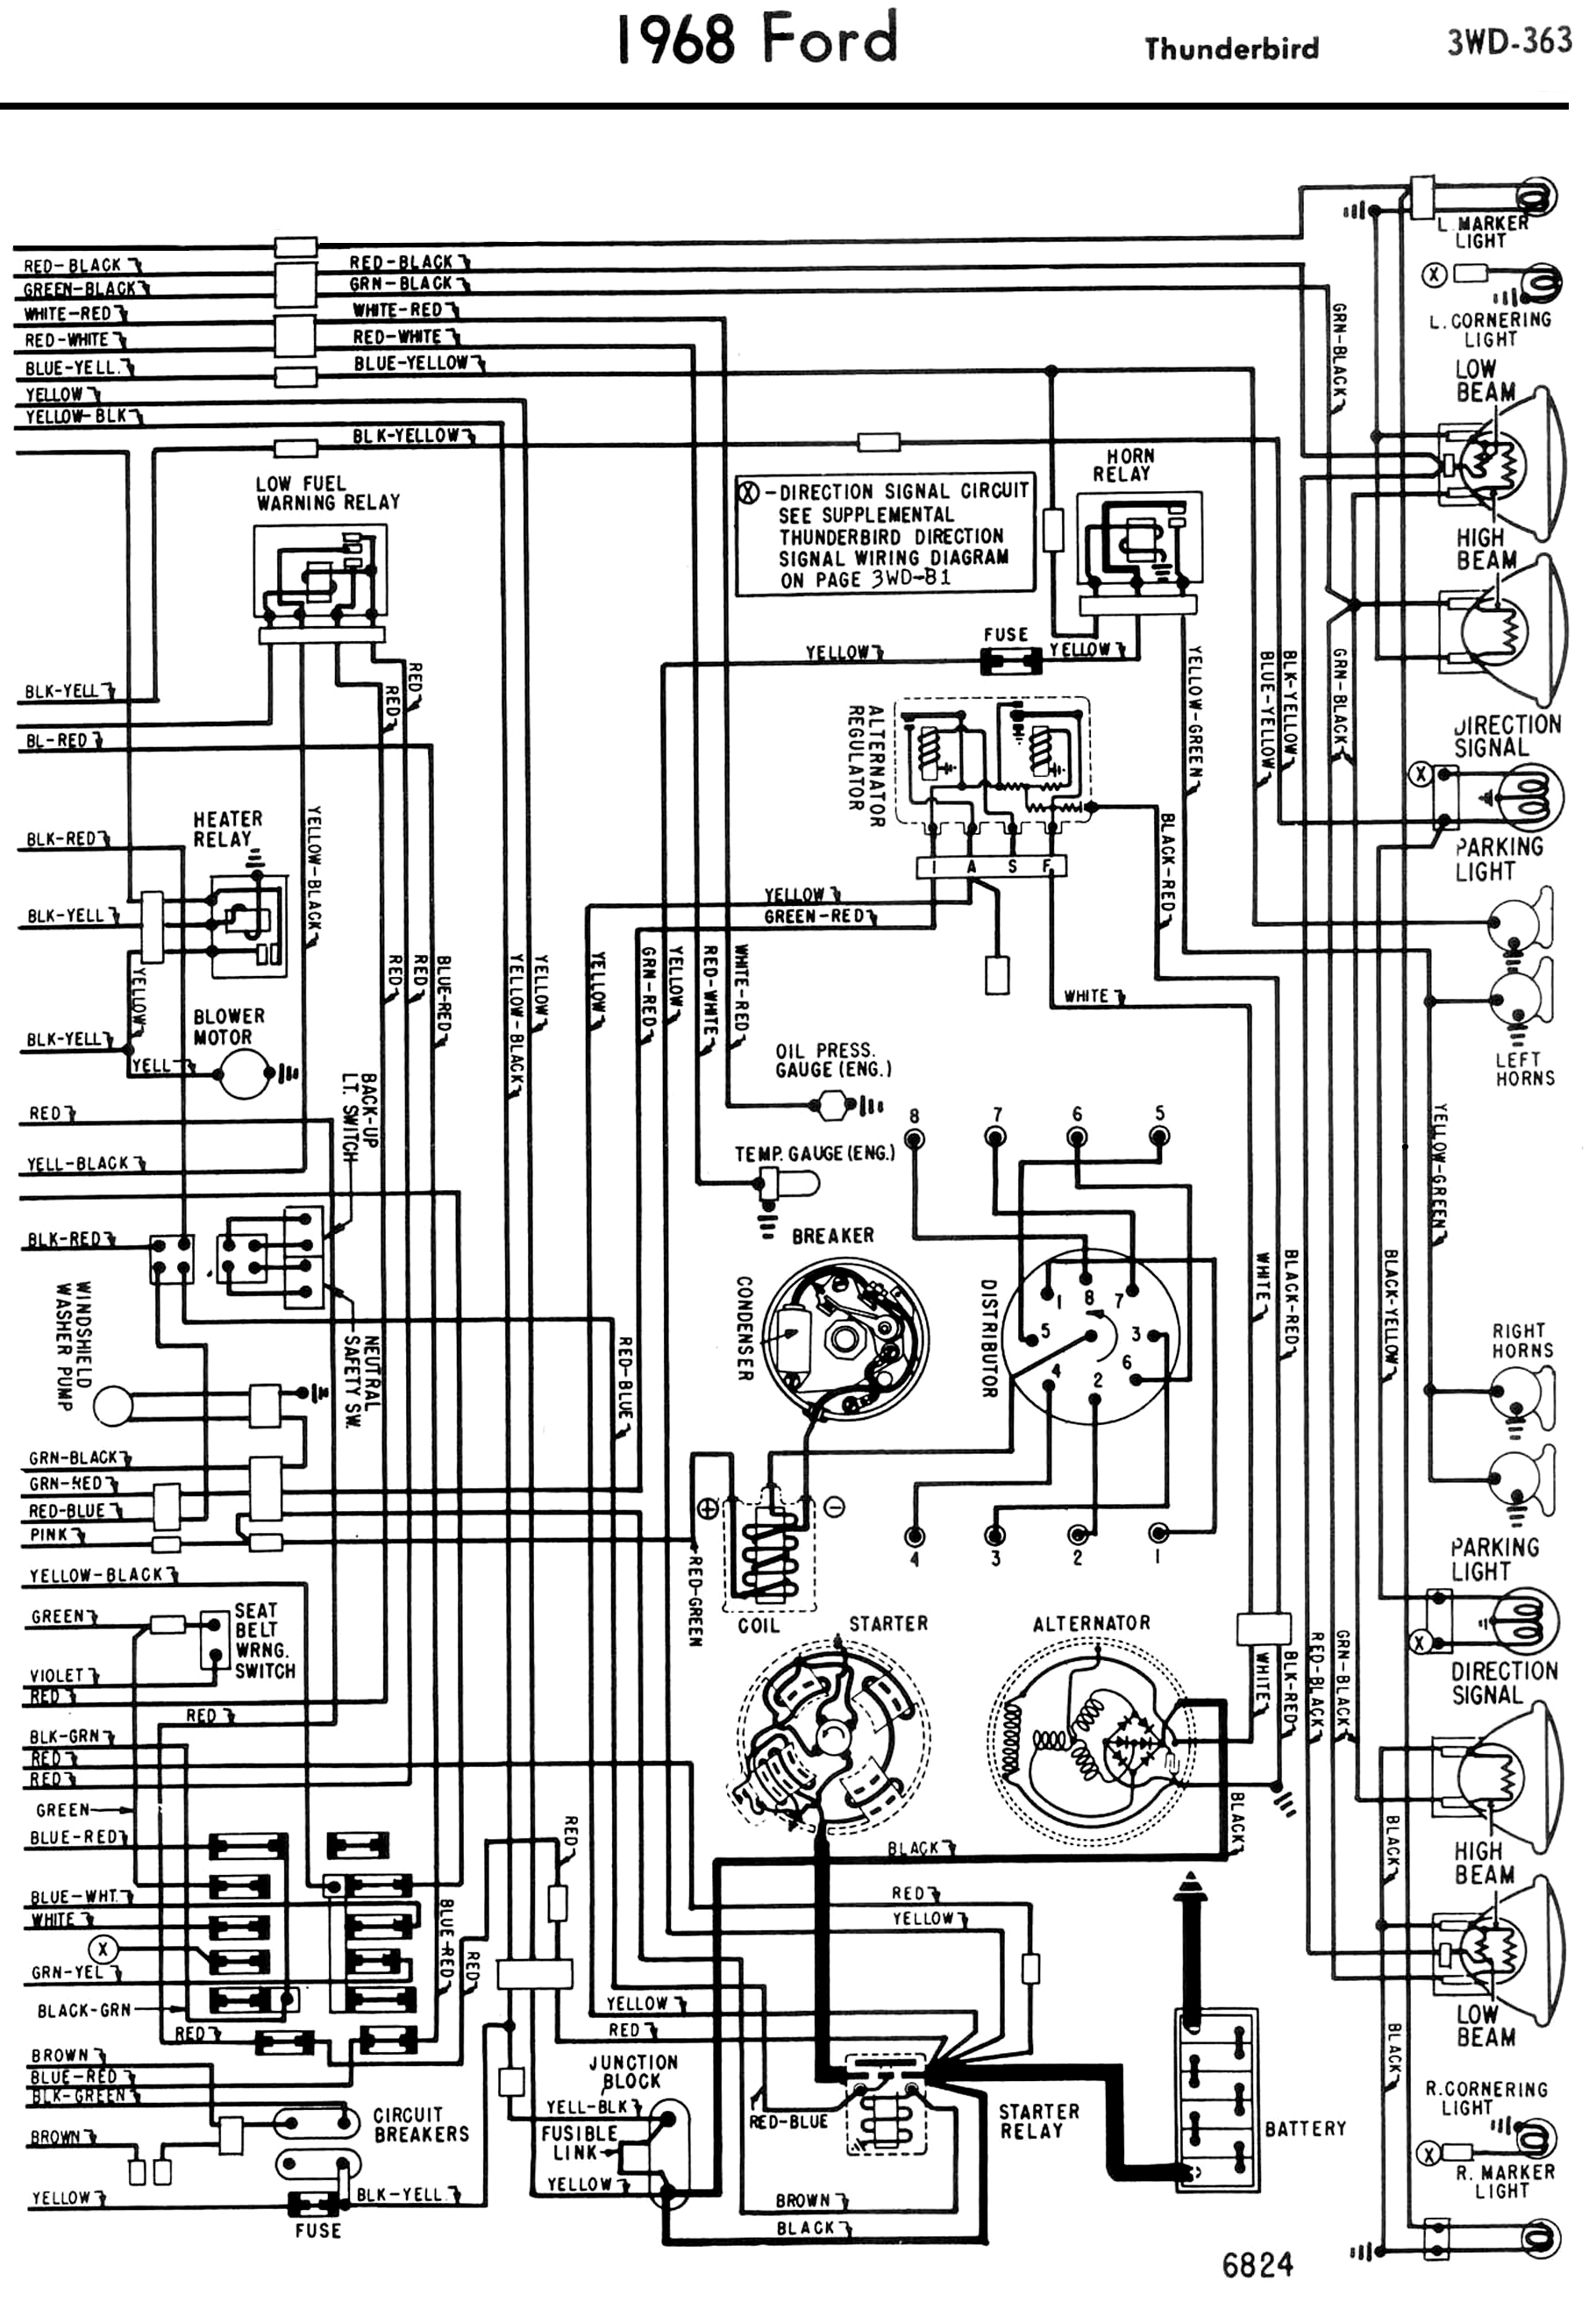 1958 68 ford electrical schematics rh squarebirds org 1957 ford thunderbird wiring diagram 1957 ford thunderbird wiring diagram